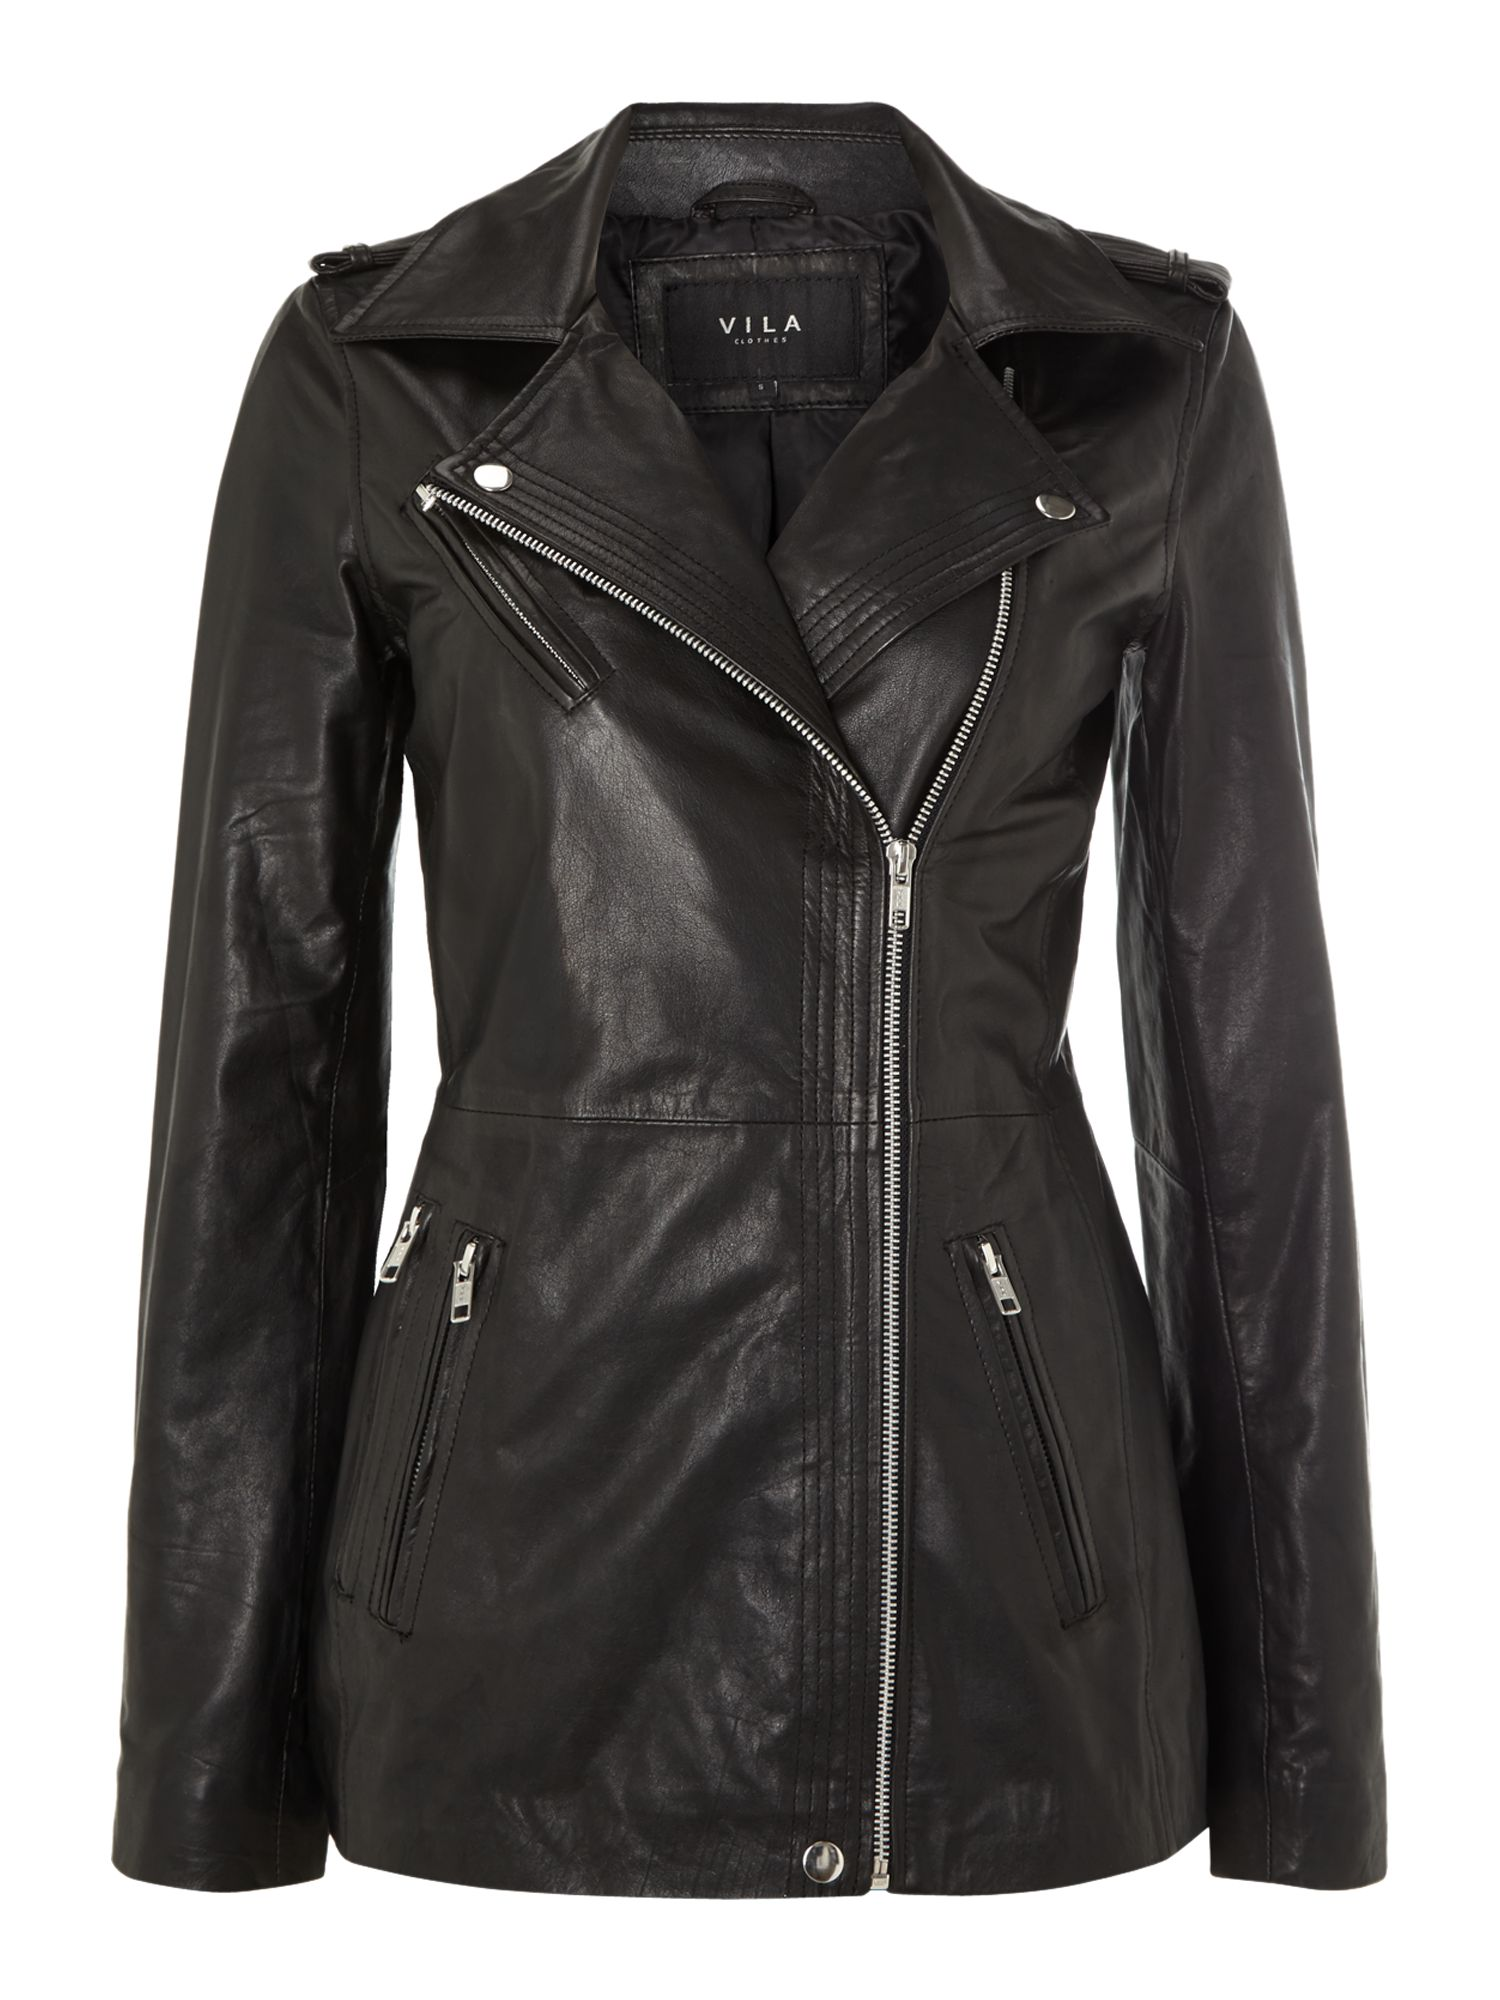 Long leather biker jacket